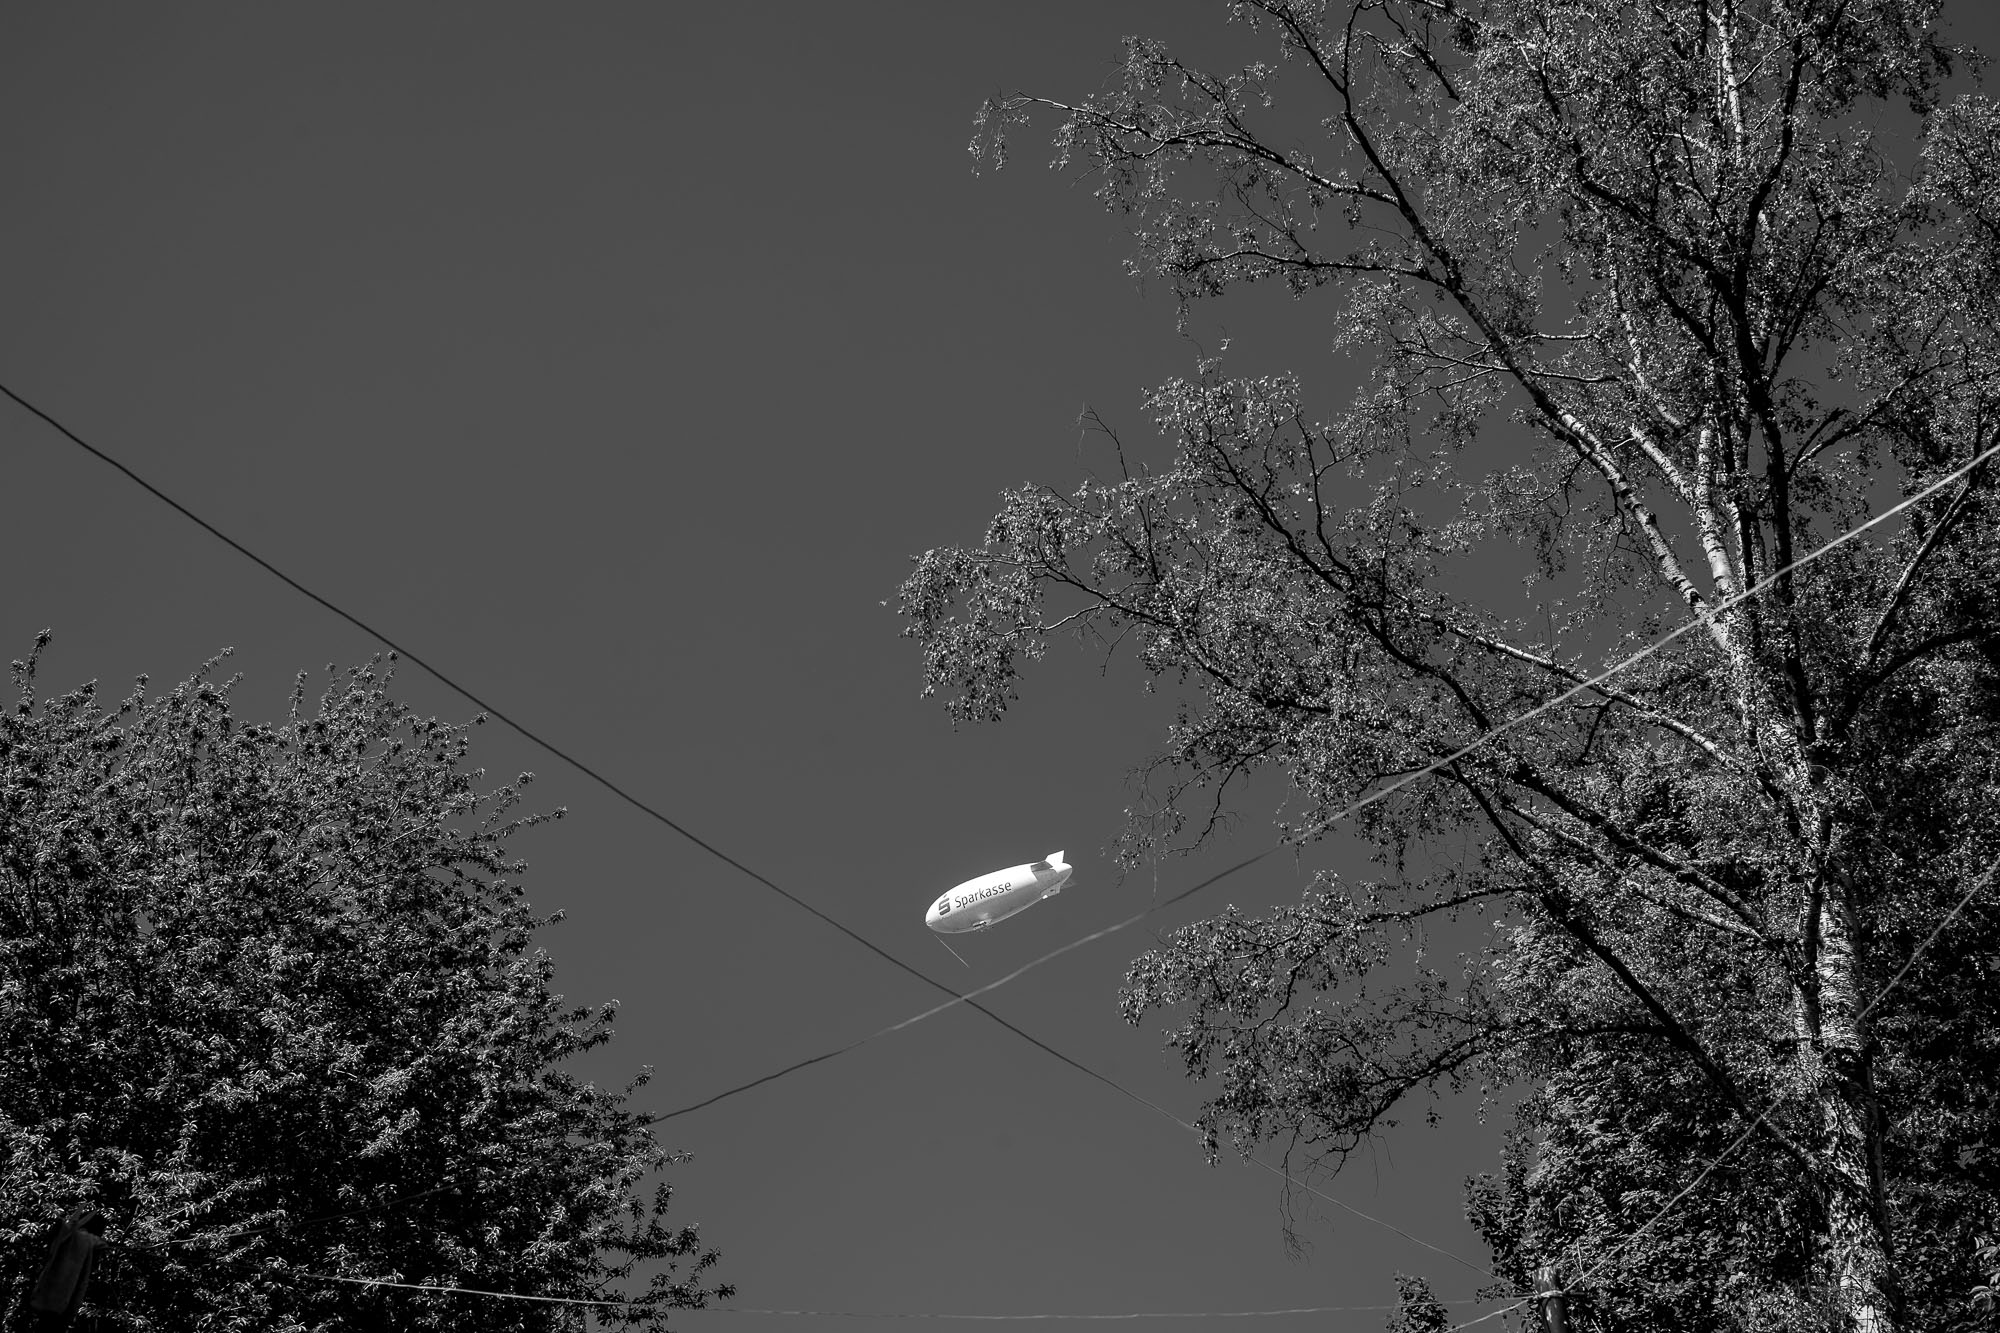 Zeppelin in the sky, framed by trees, clothes lines criss-cossing below it